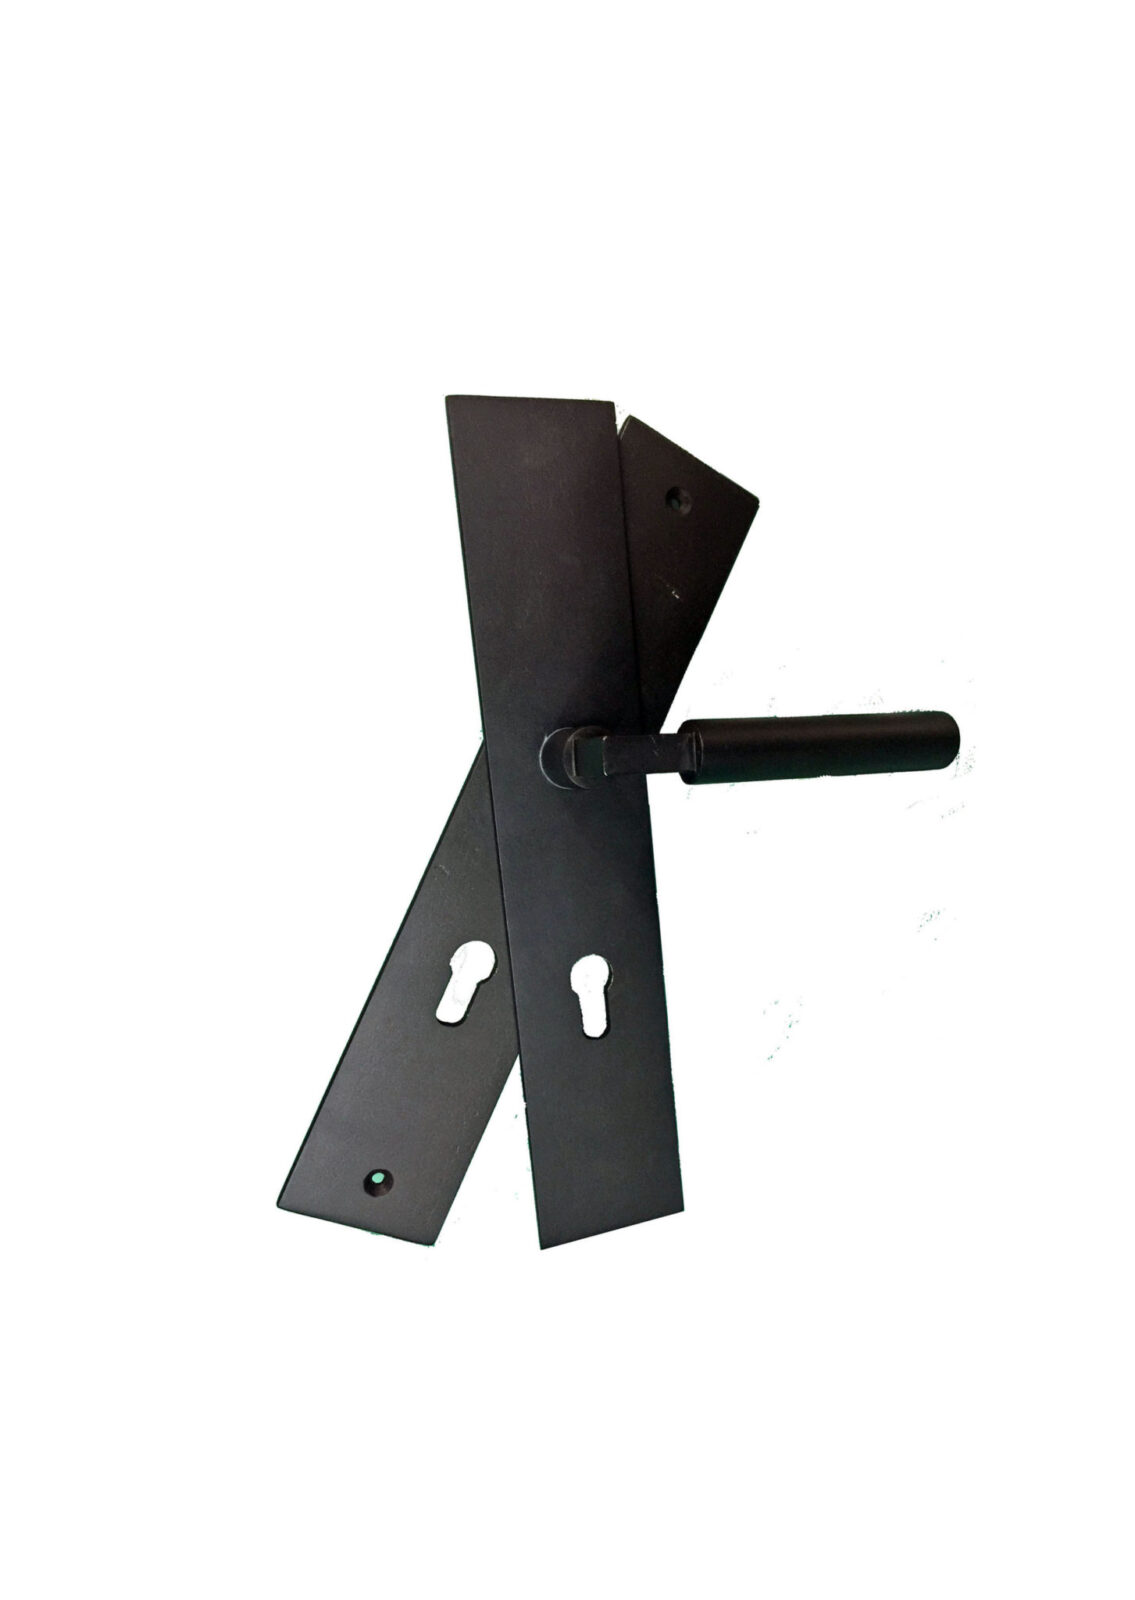 STAR ISLAND DOUBLE PLATE WROUGH IRON HANDLE. (1)